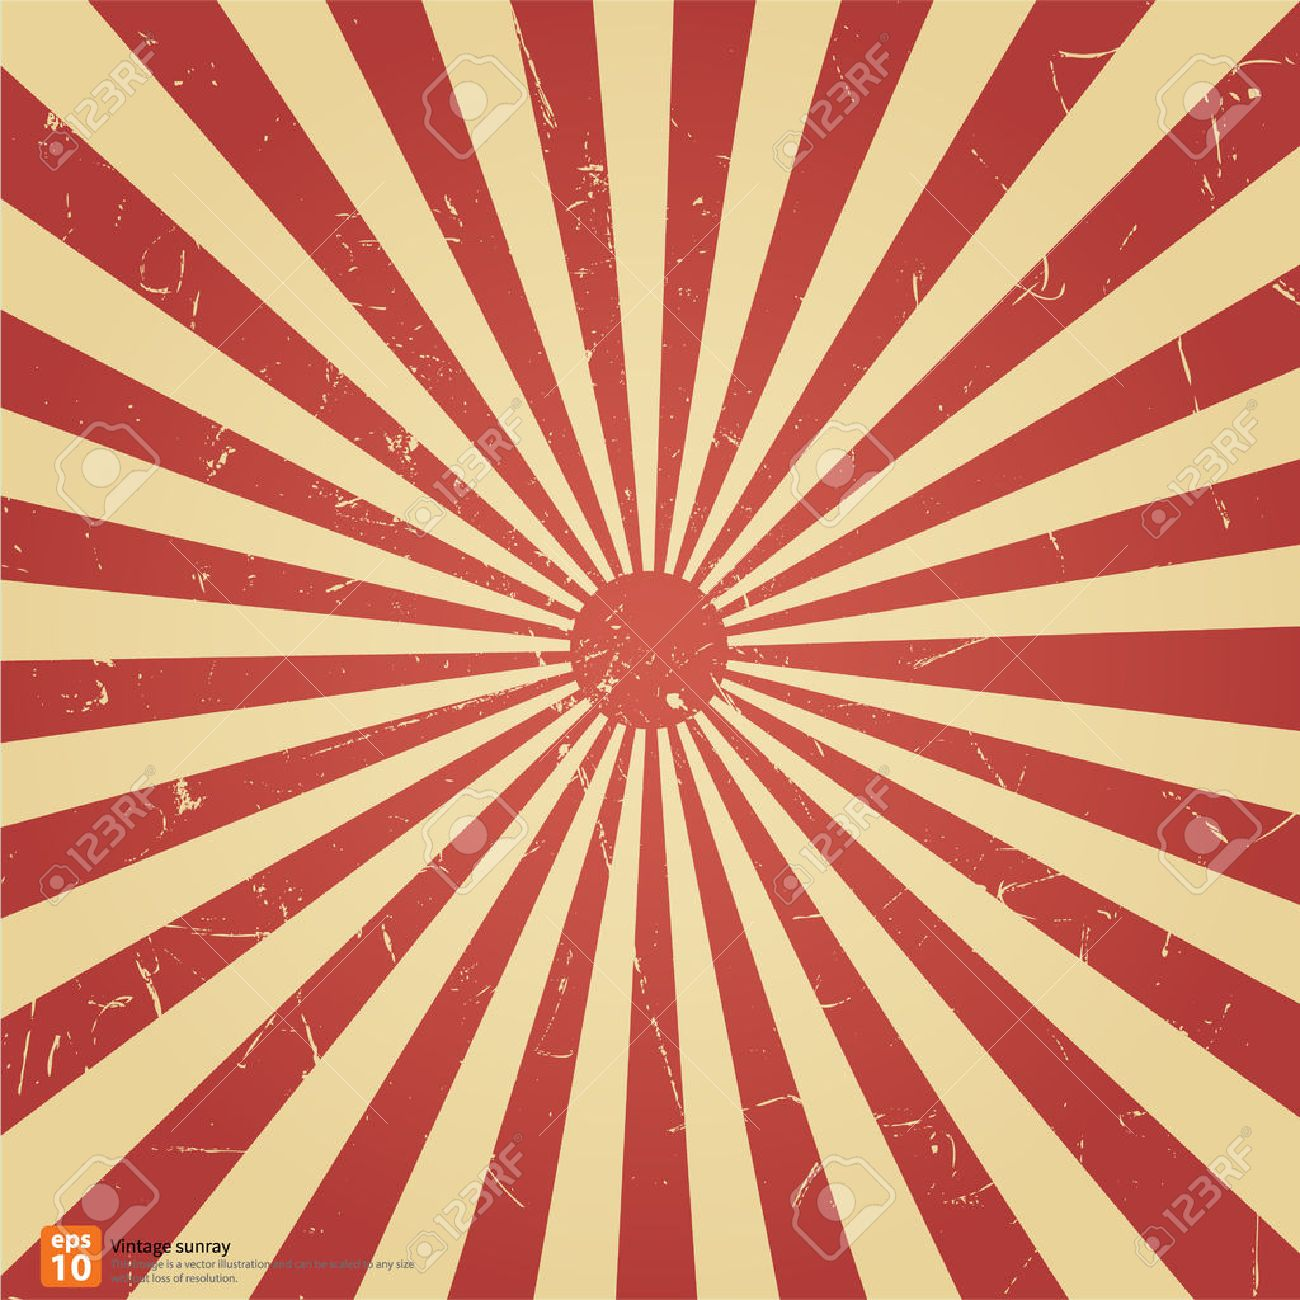 New Vector Vintage Red Rising Sun Or Sun Ray,sun Burst Retro ...